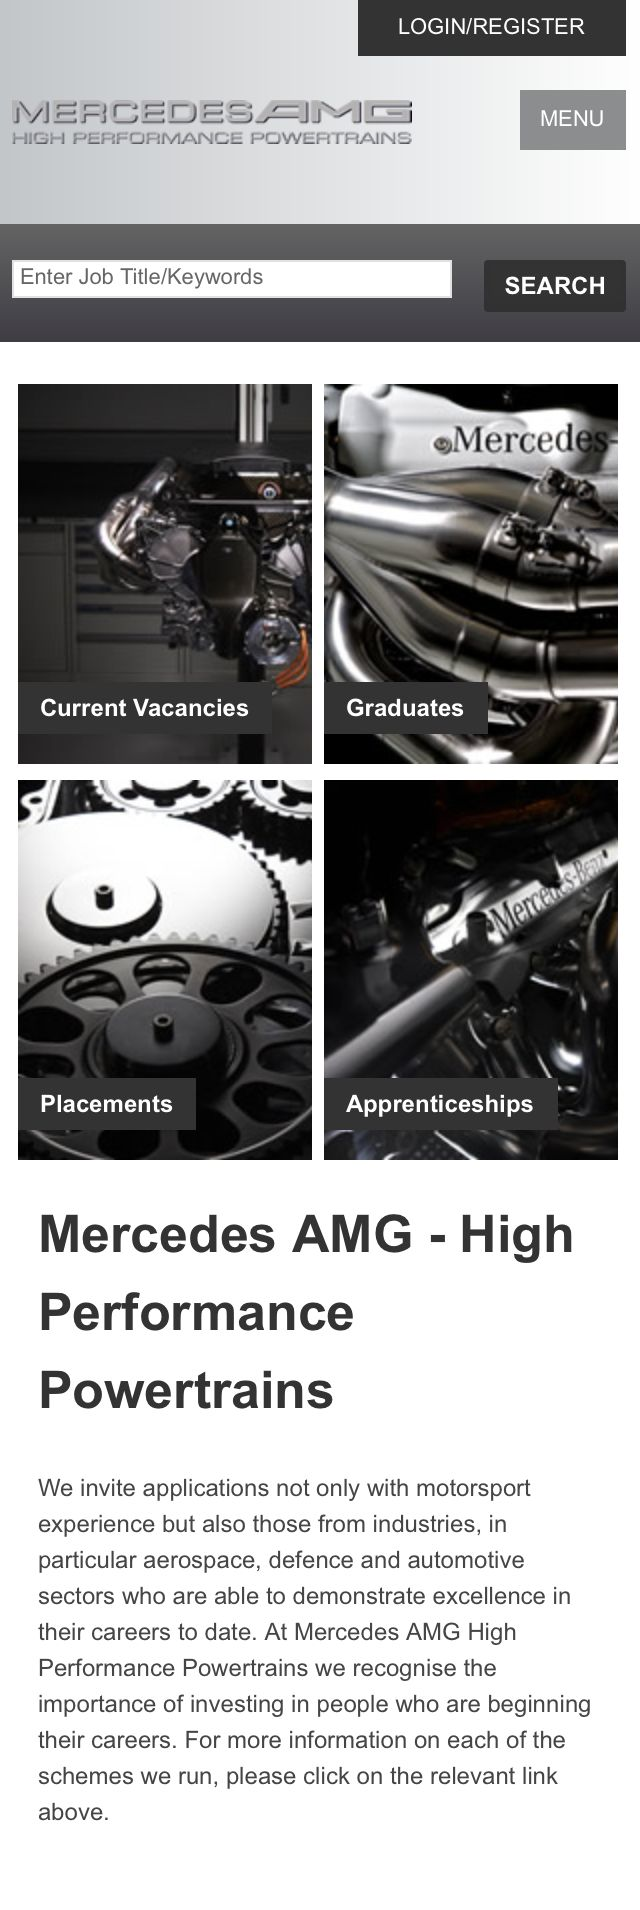 Mercedes-AMG mobile responsive careers site